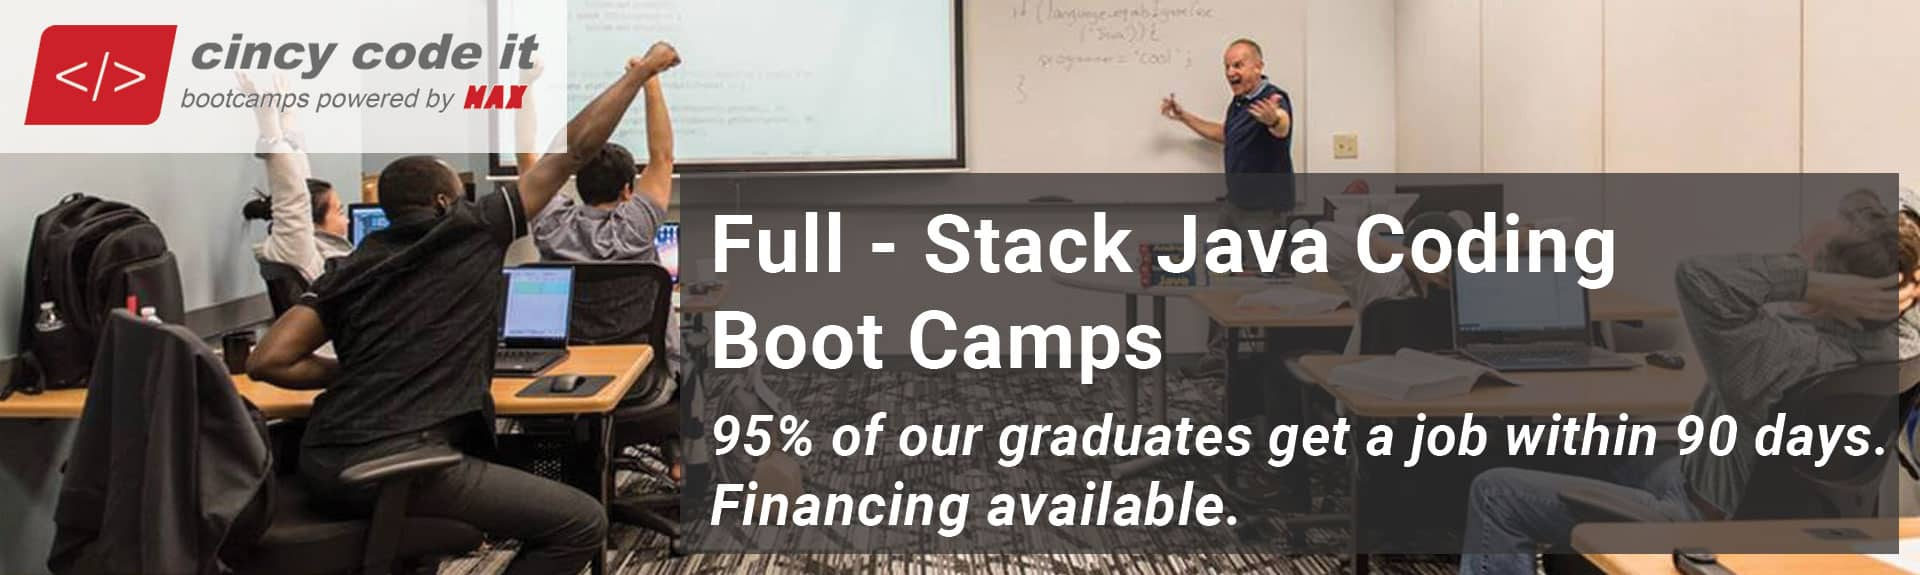 Coding Bootcamps in Java - MAX Technical Training, Cincy Code IT